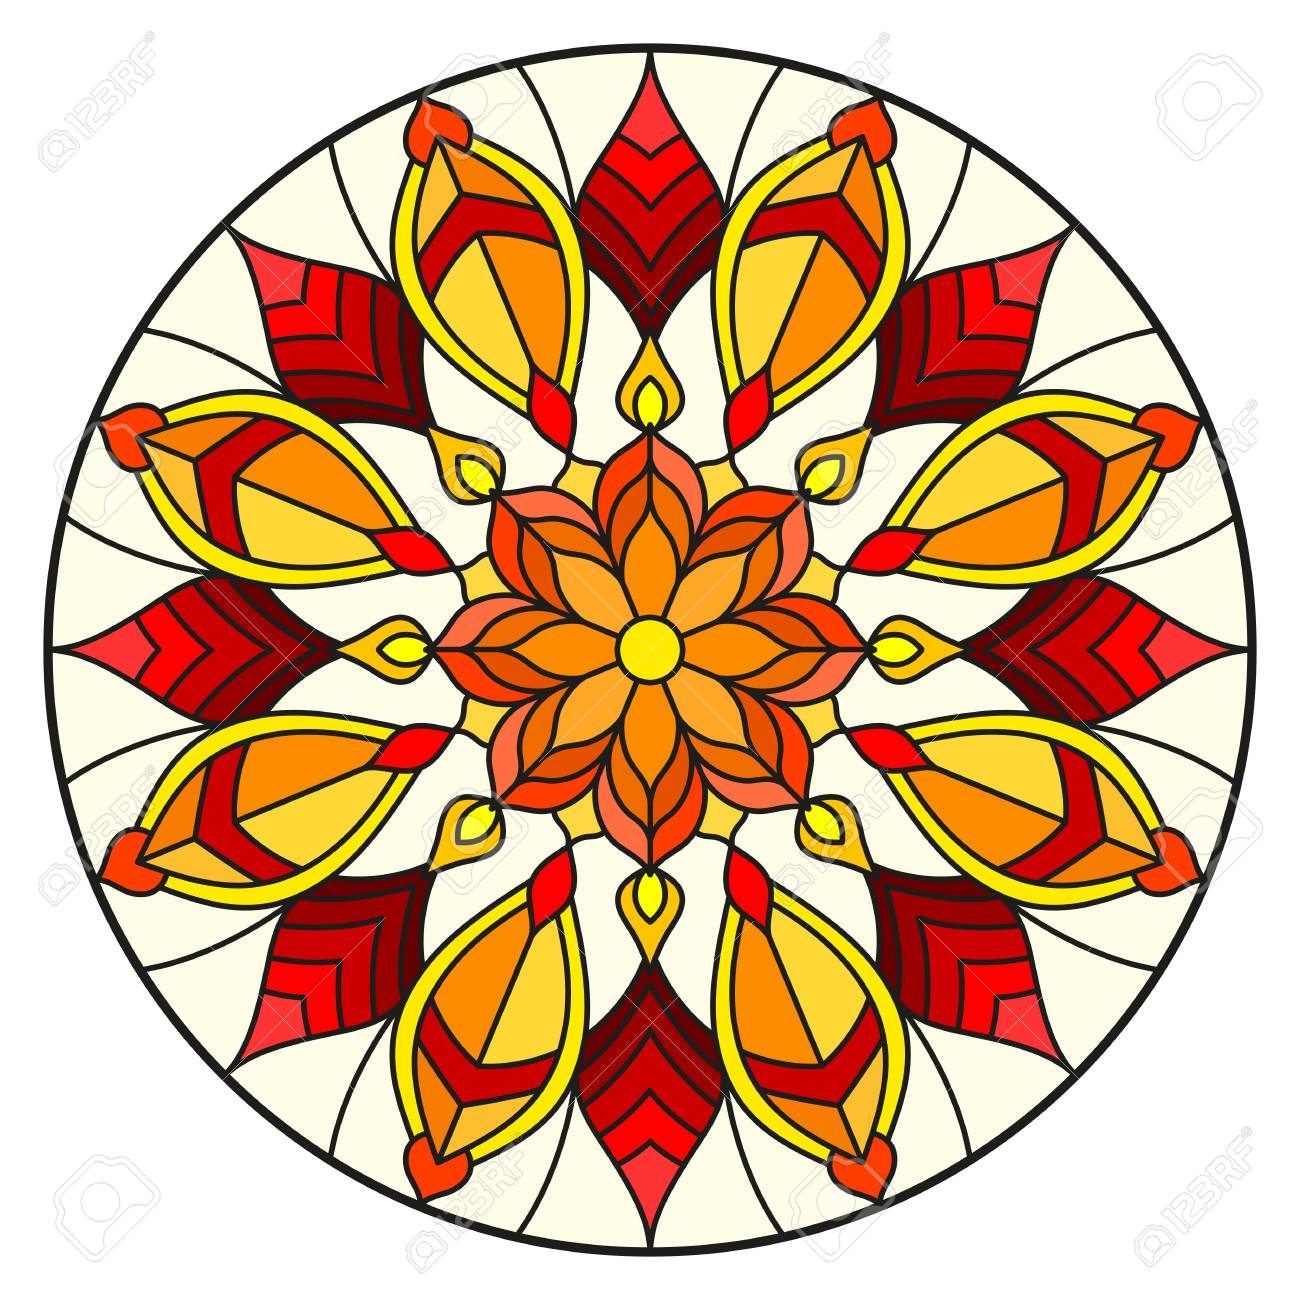 Illustration in stained glass style with abstract flowers, leaves and swirls, circular image on white background - 97576052